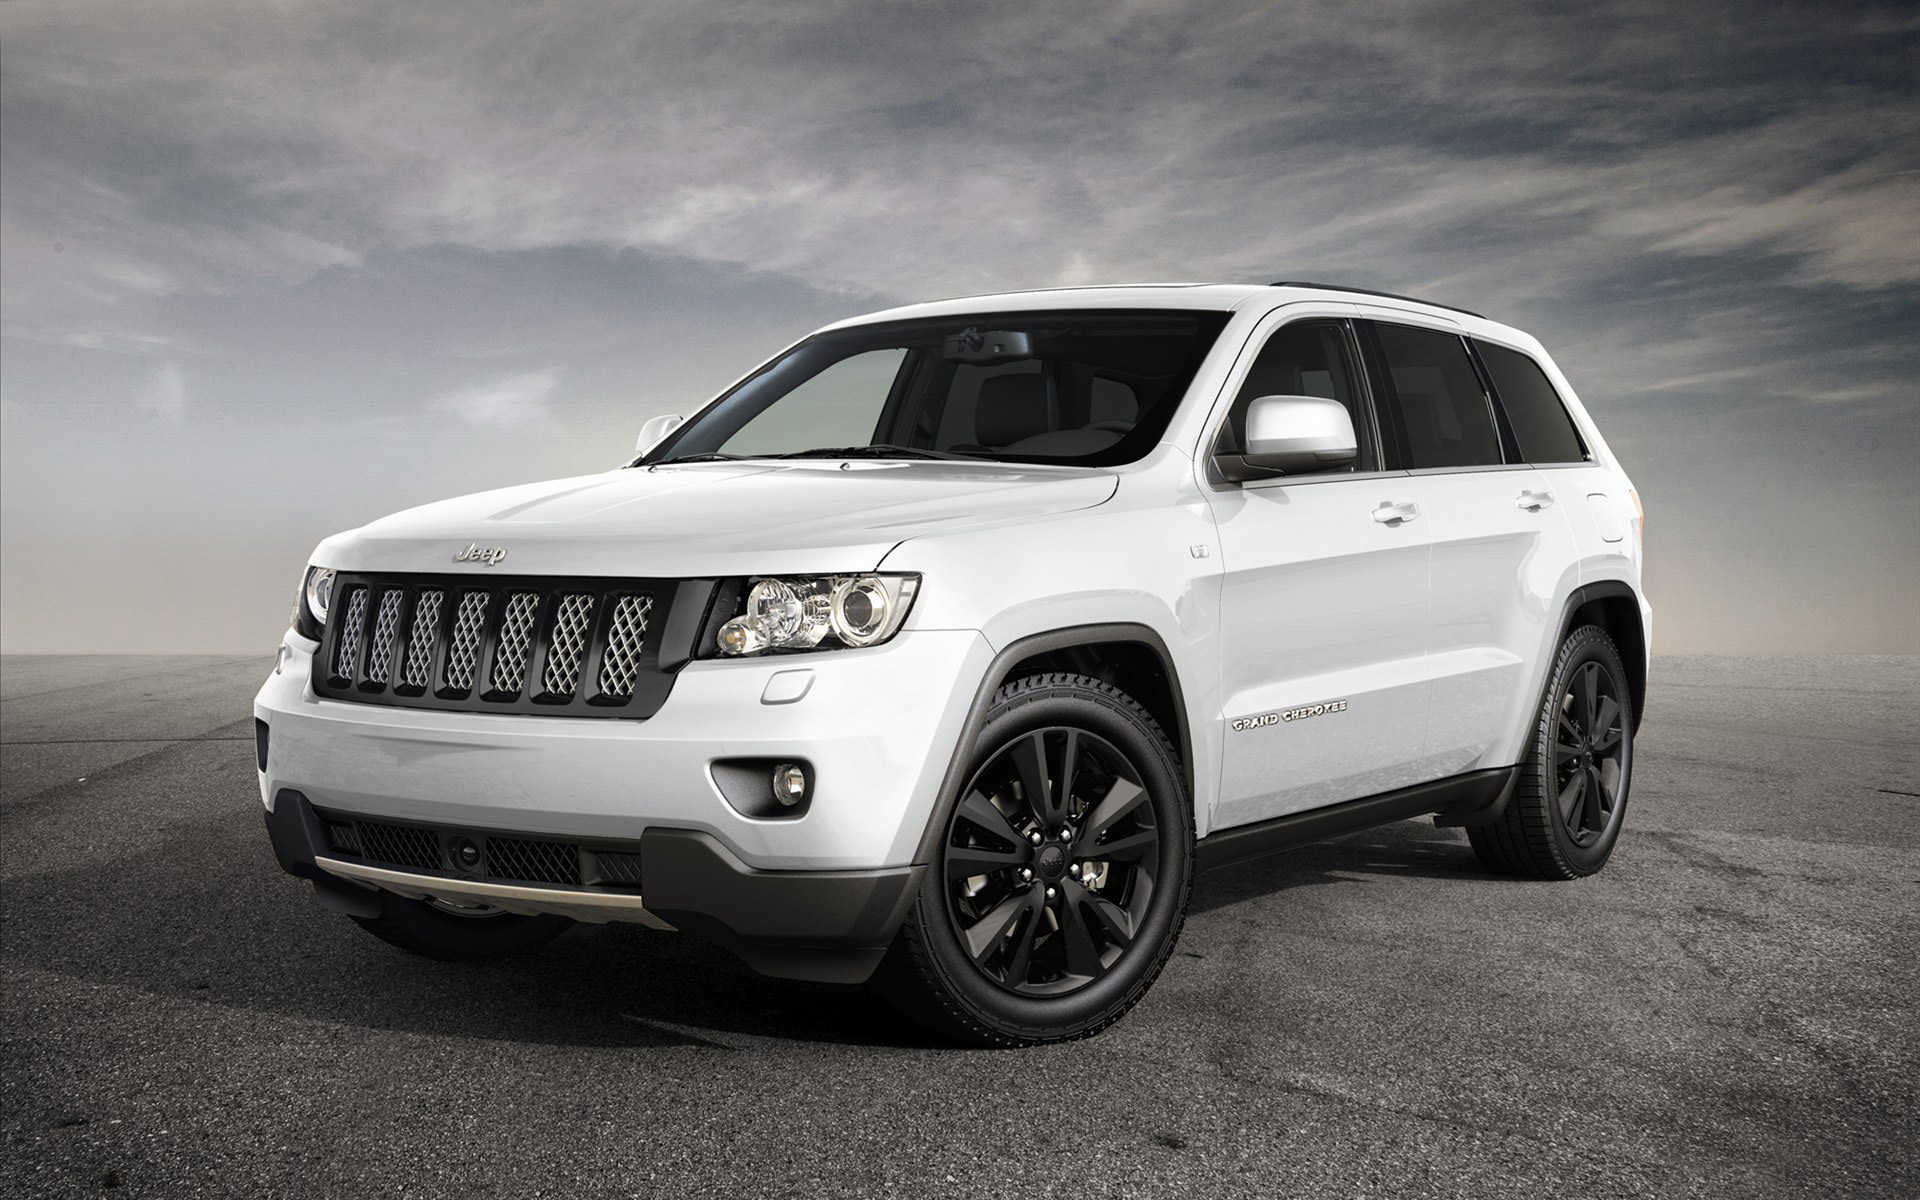 2012 jeep grand cherokee wallpaper hd car wallpapers. Black Bedroom Furniture Sets. Home Design Ideas